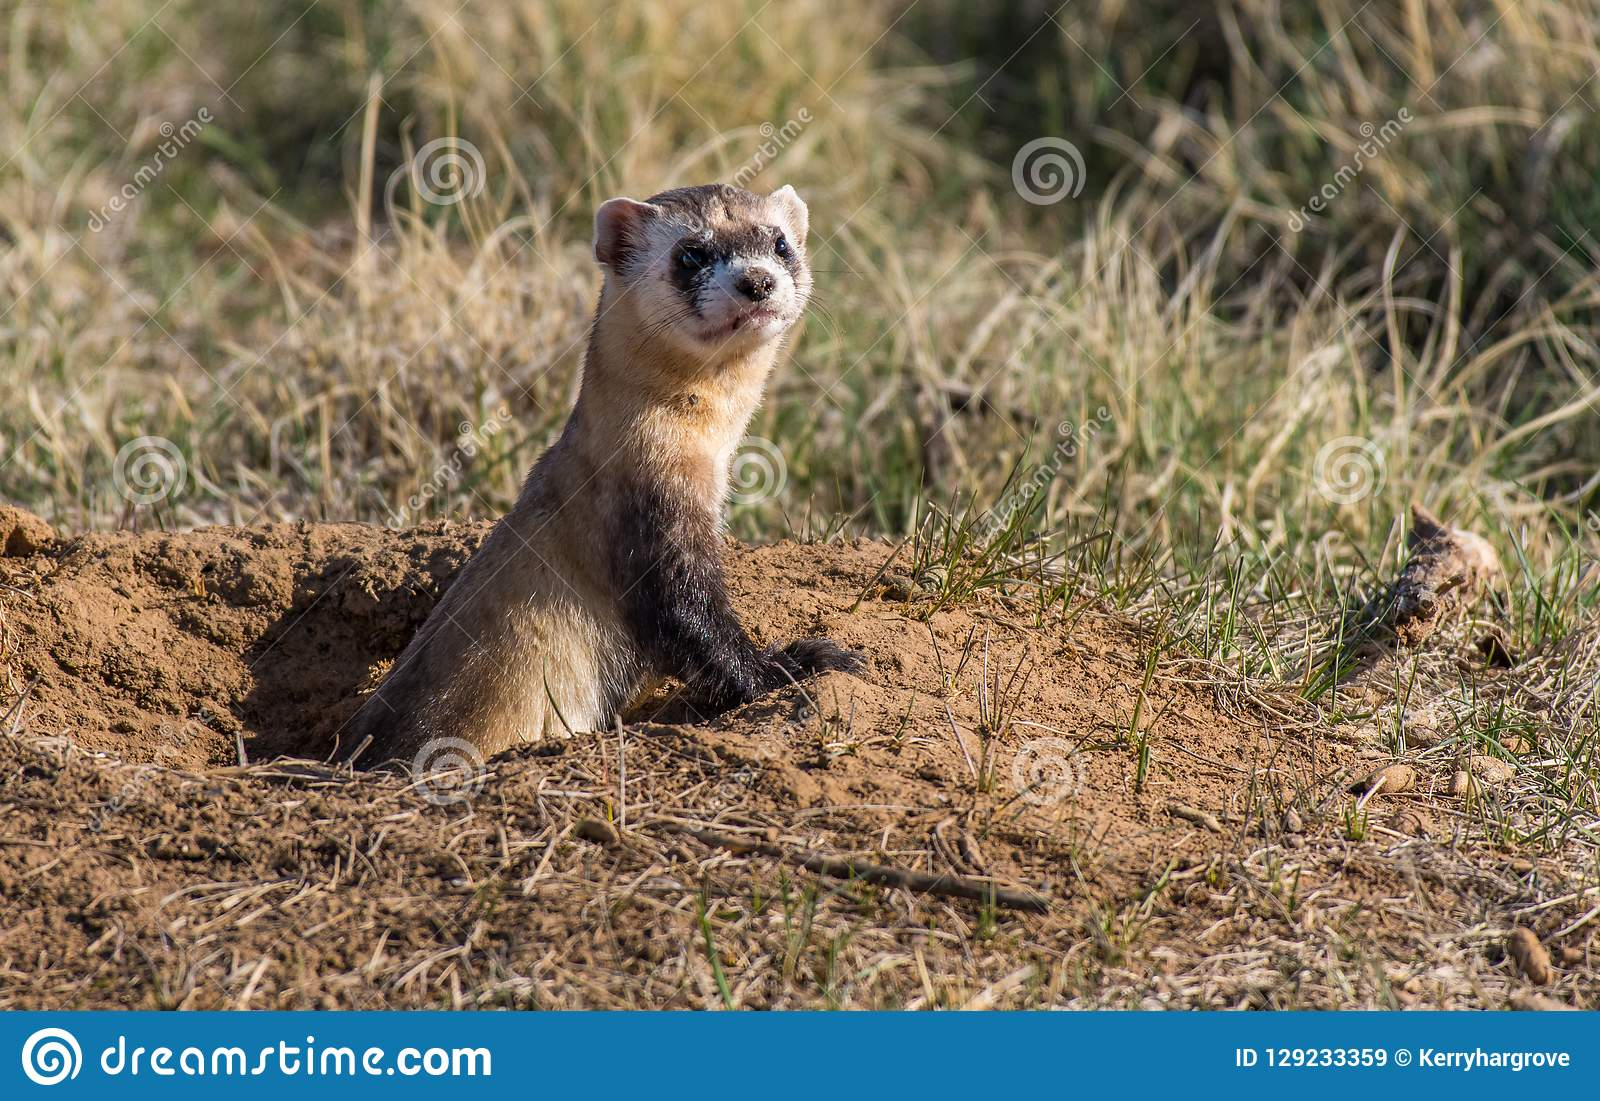 An Endangered Black-footed Ferret Popping out of a Prairie Dog Burrow for a Quick Observation